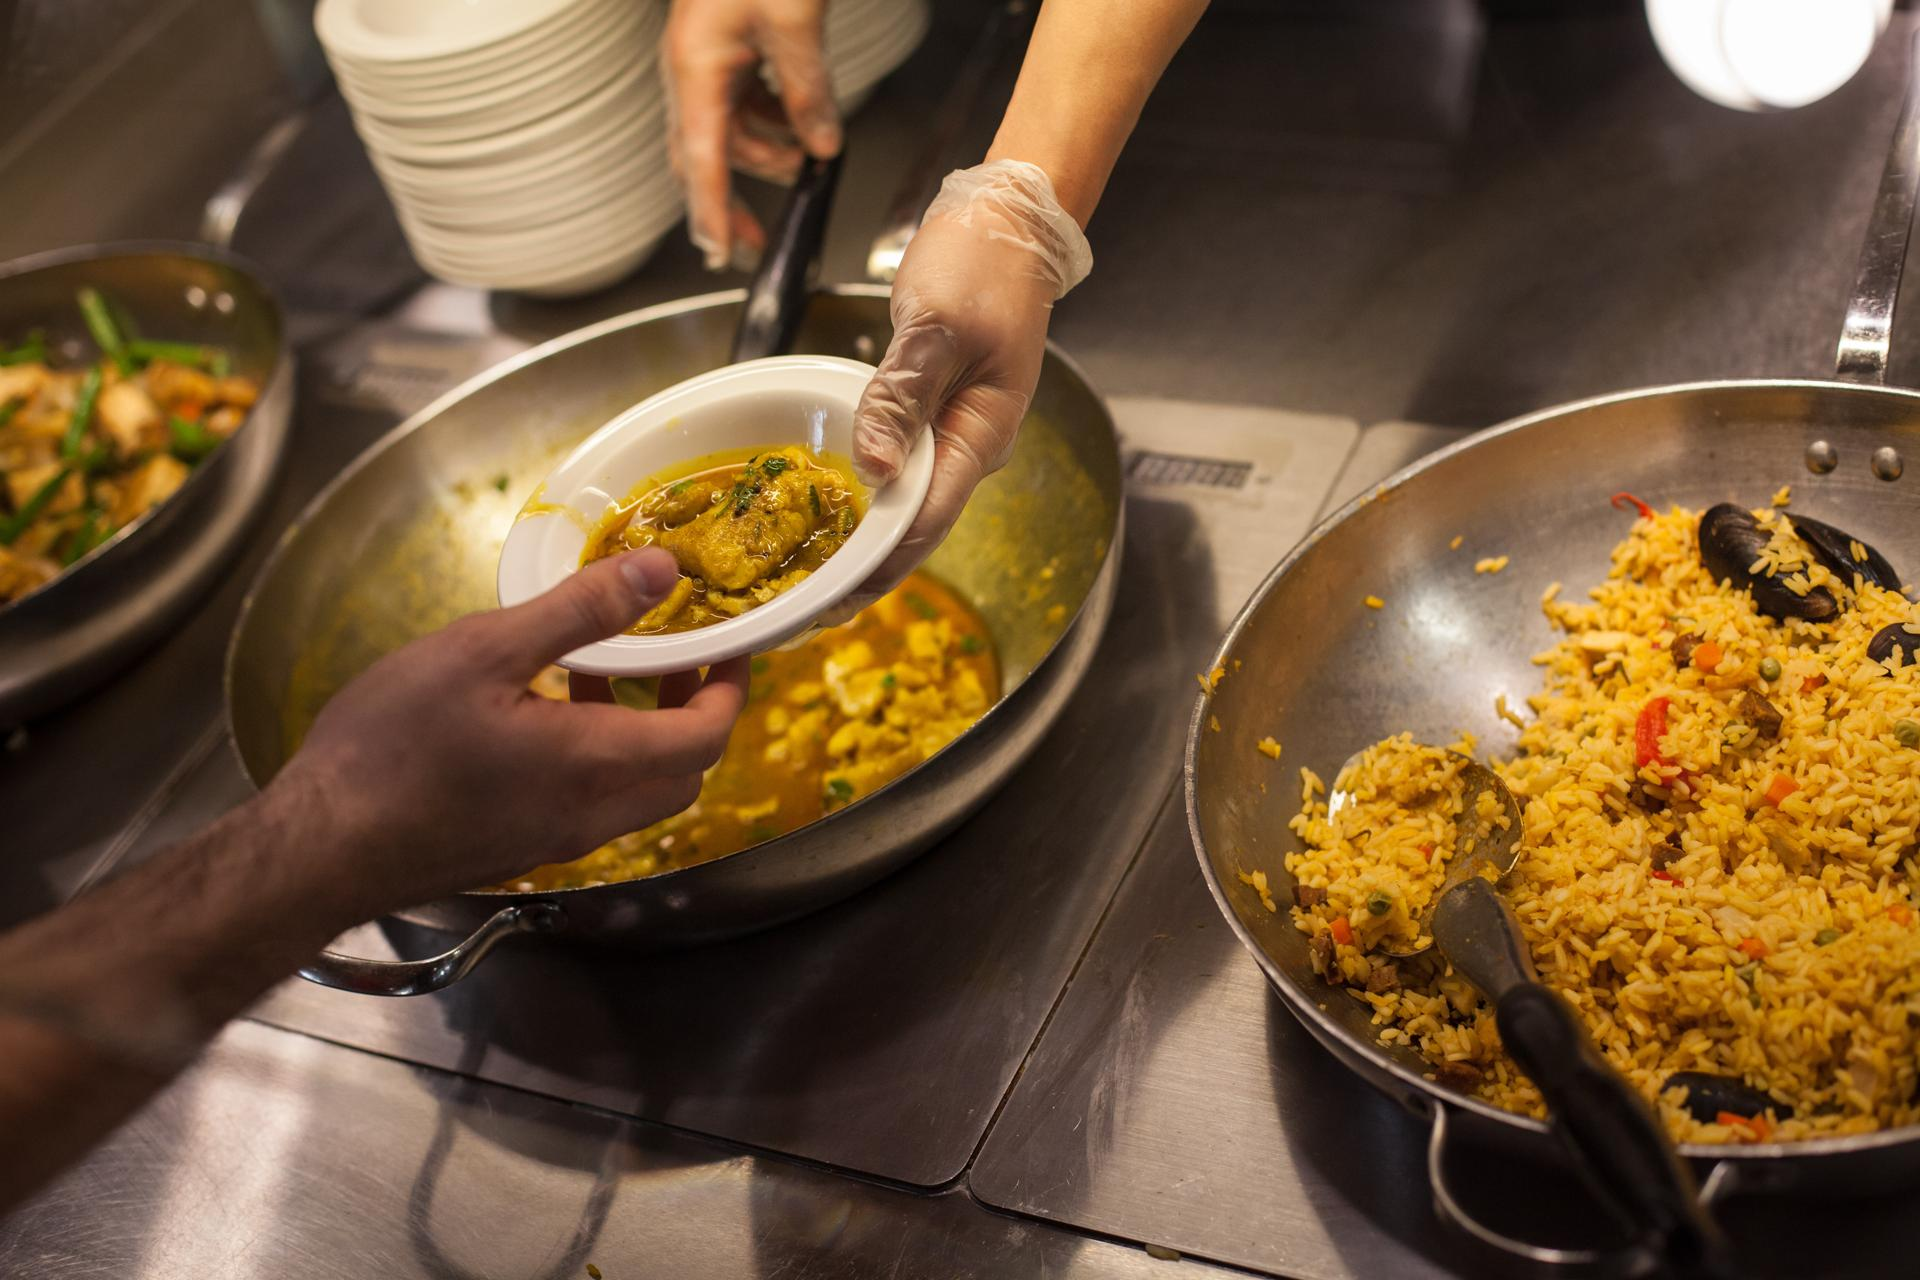 A student served fish curry made with locally sourced red fish in the hampshire